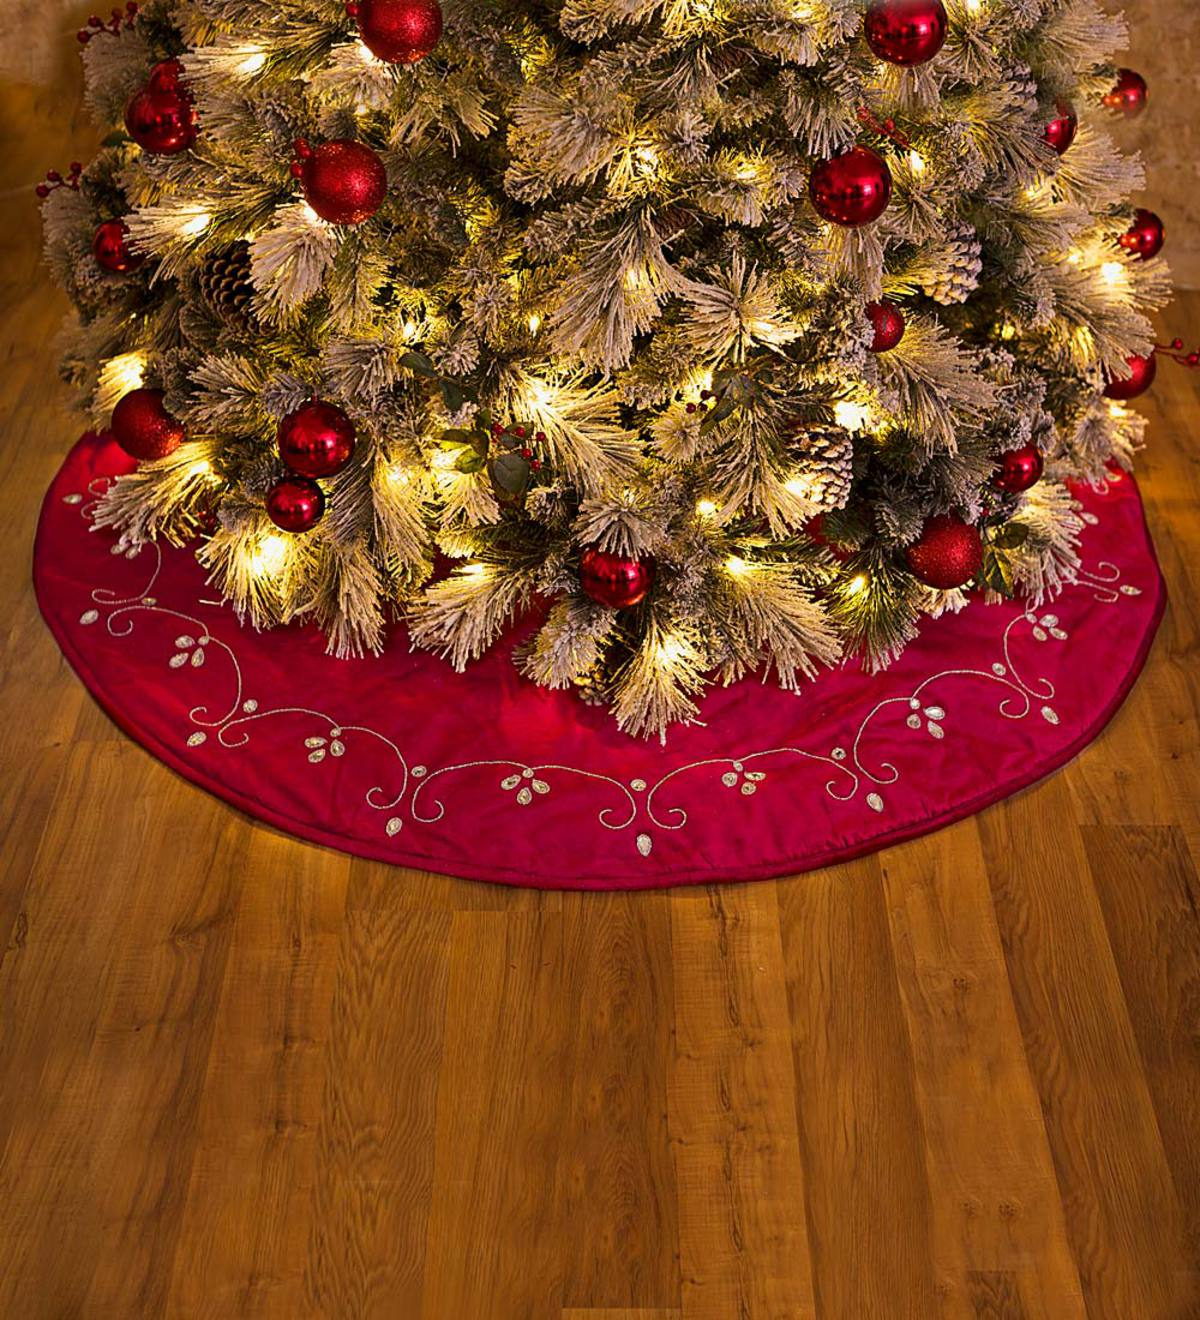 Deep Red Poinsettia Flower Elegant One Holiday Tree Skirt Baby It/'s Cold Outside Ice Blue Christmas Home Decor Festive Floral Fabric